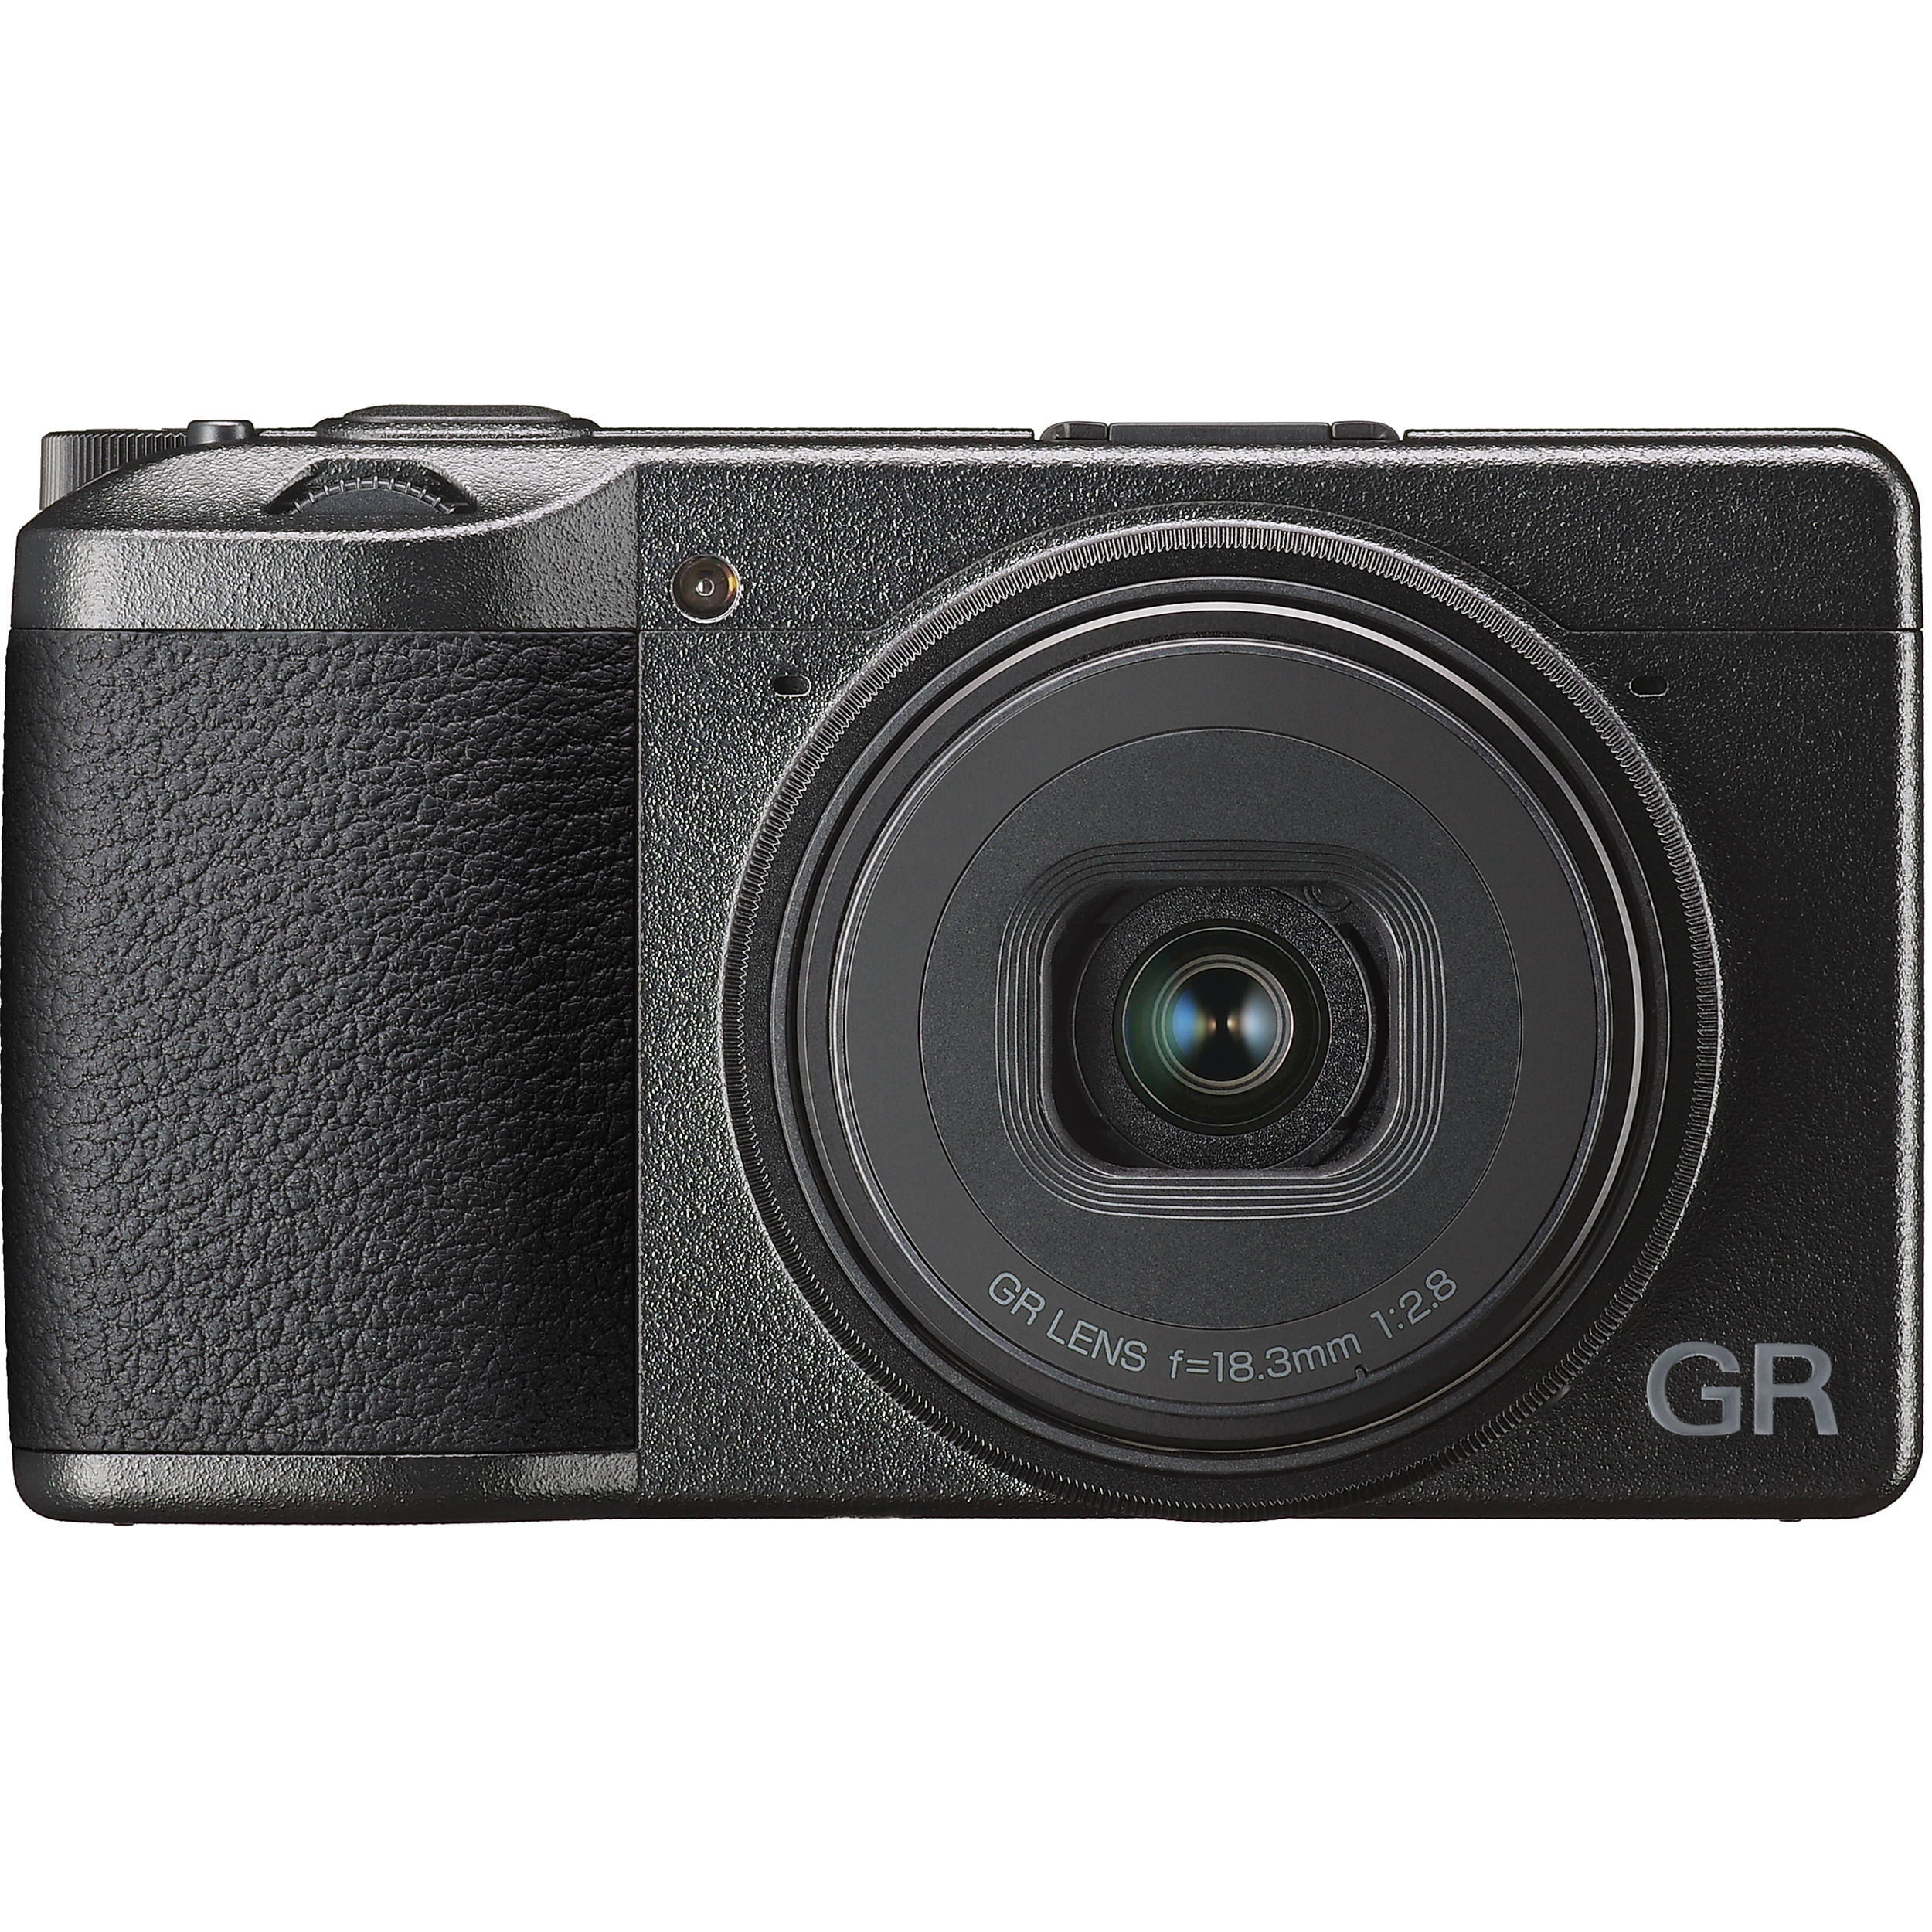 RICOH GR DIGITAL II CAMERA DRIVER DOWNLOAD